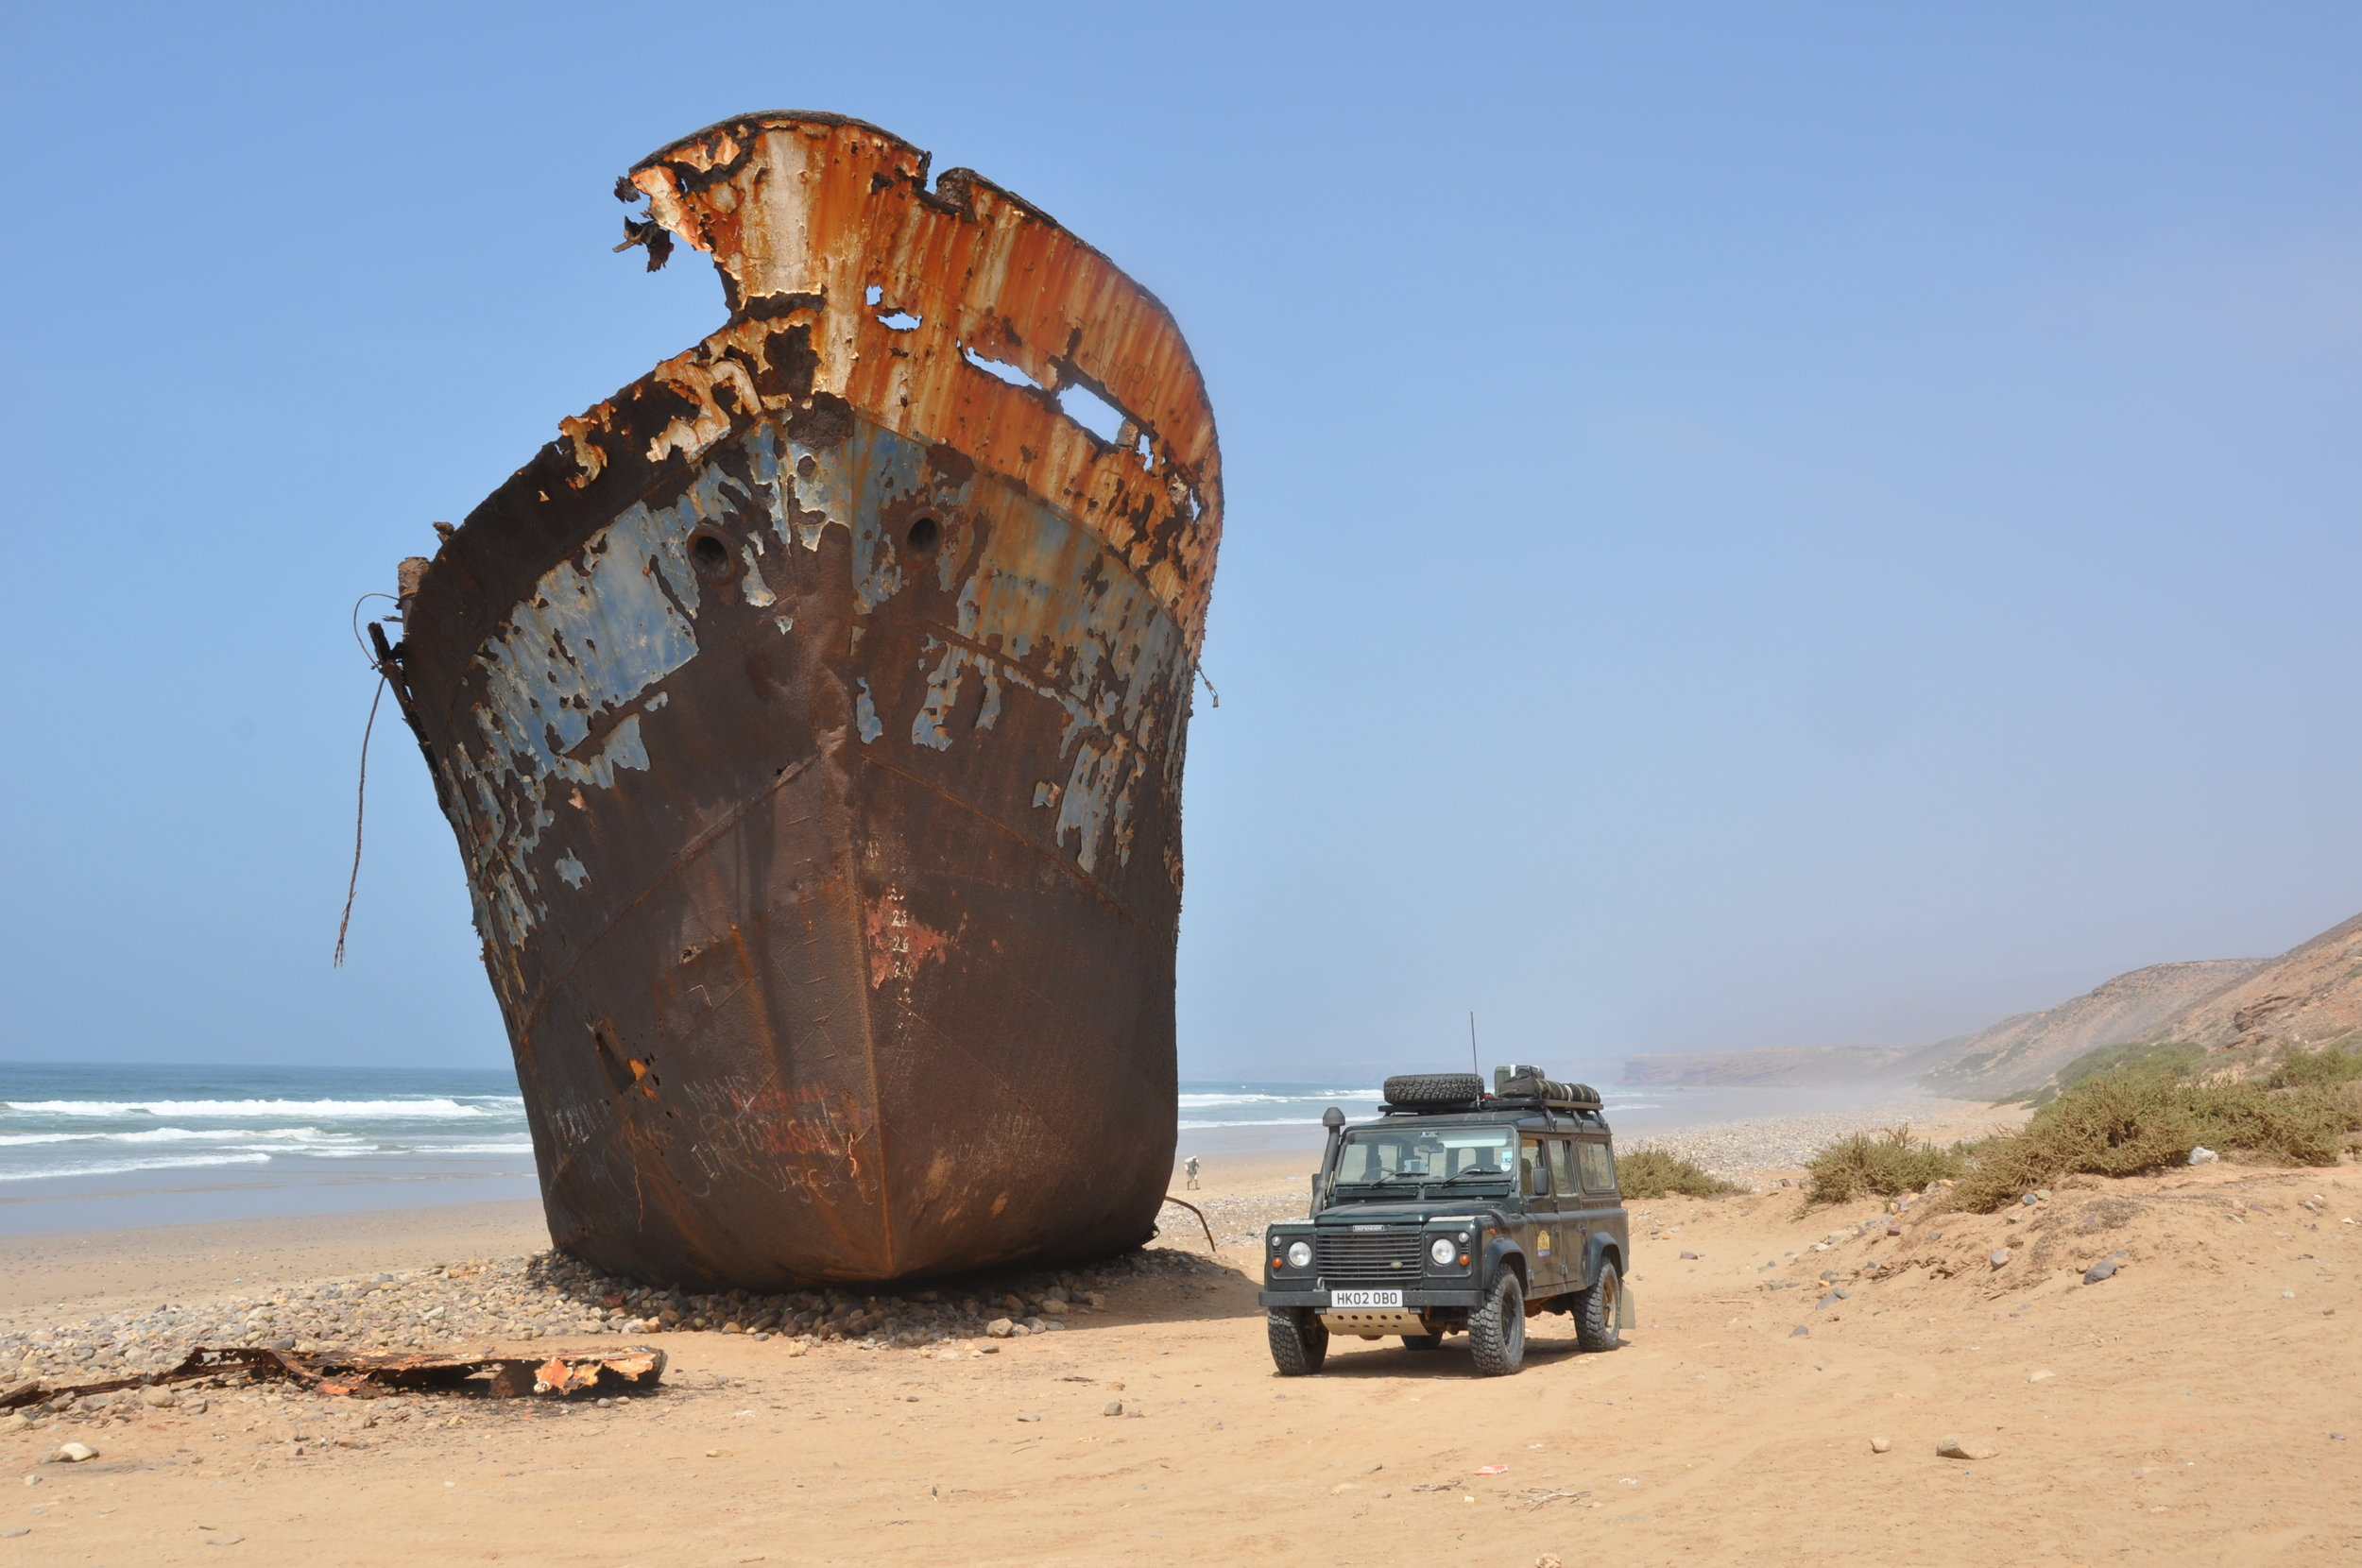 On the Atlantic coast of Morocco during a 4000 mile trek